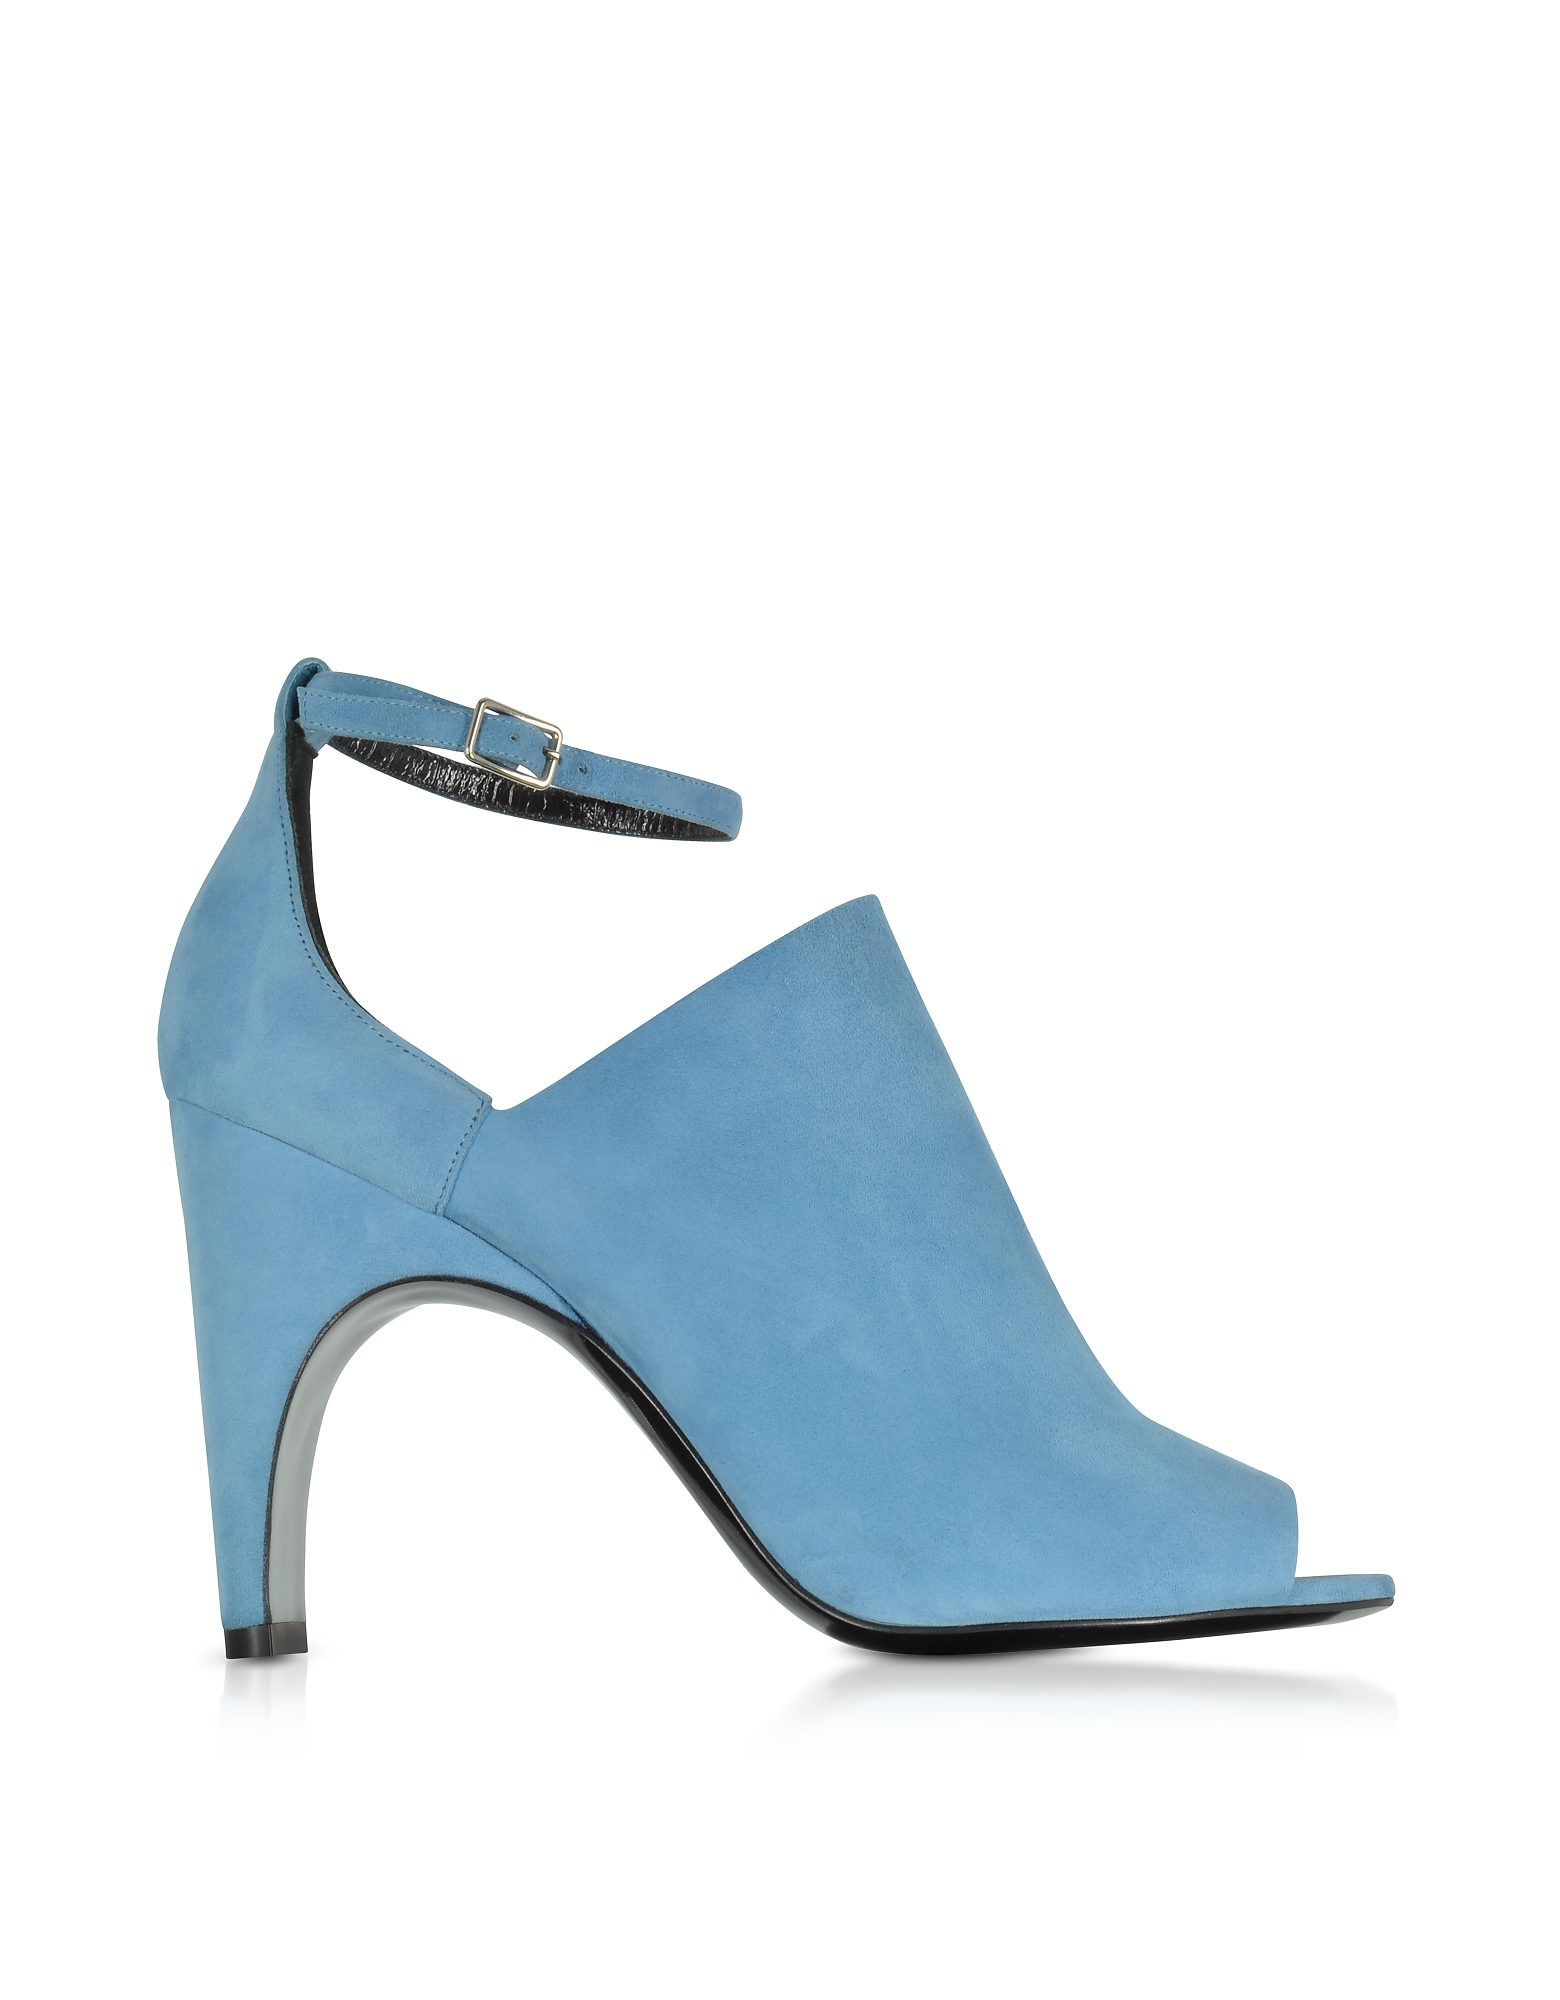 Pierre Hardy Shoes, Blue Suede High Heel Sandals